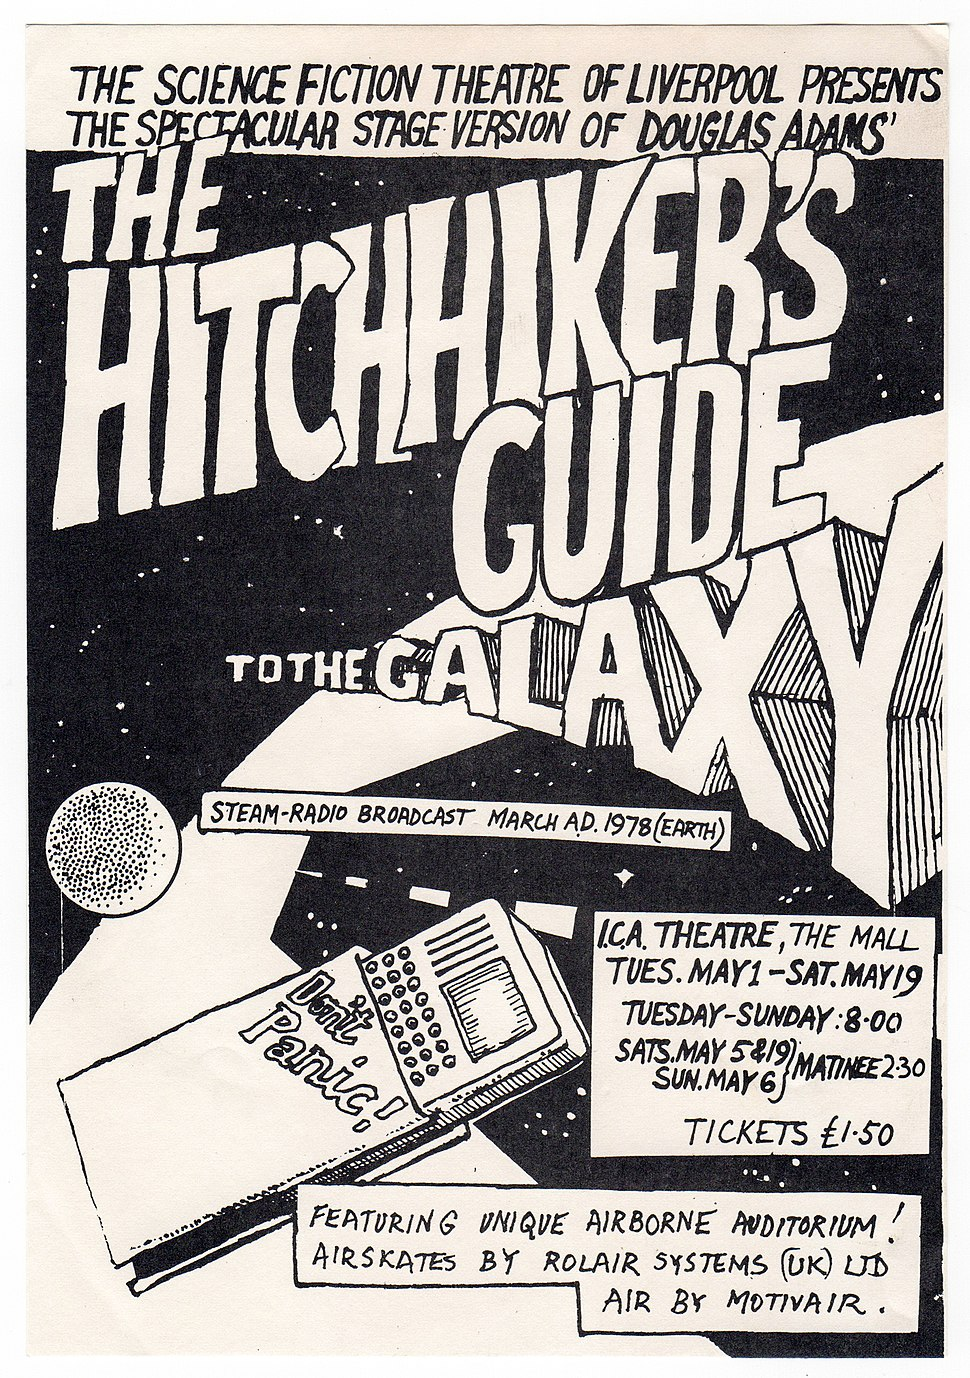 HHGTHG 1979 ICA Stage Production Flyer